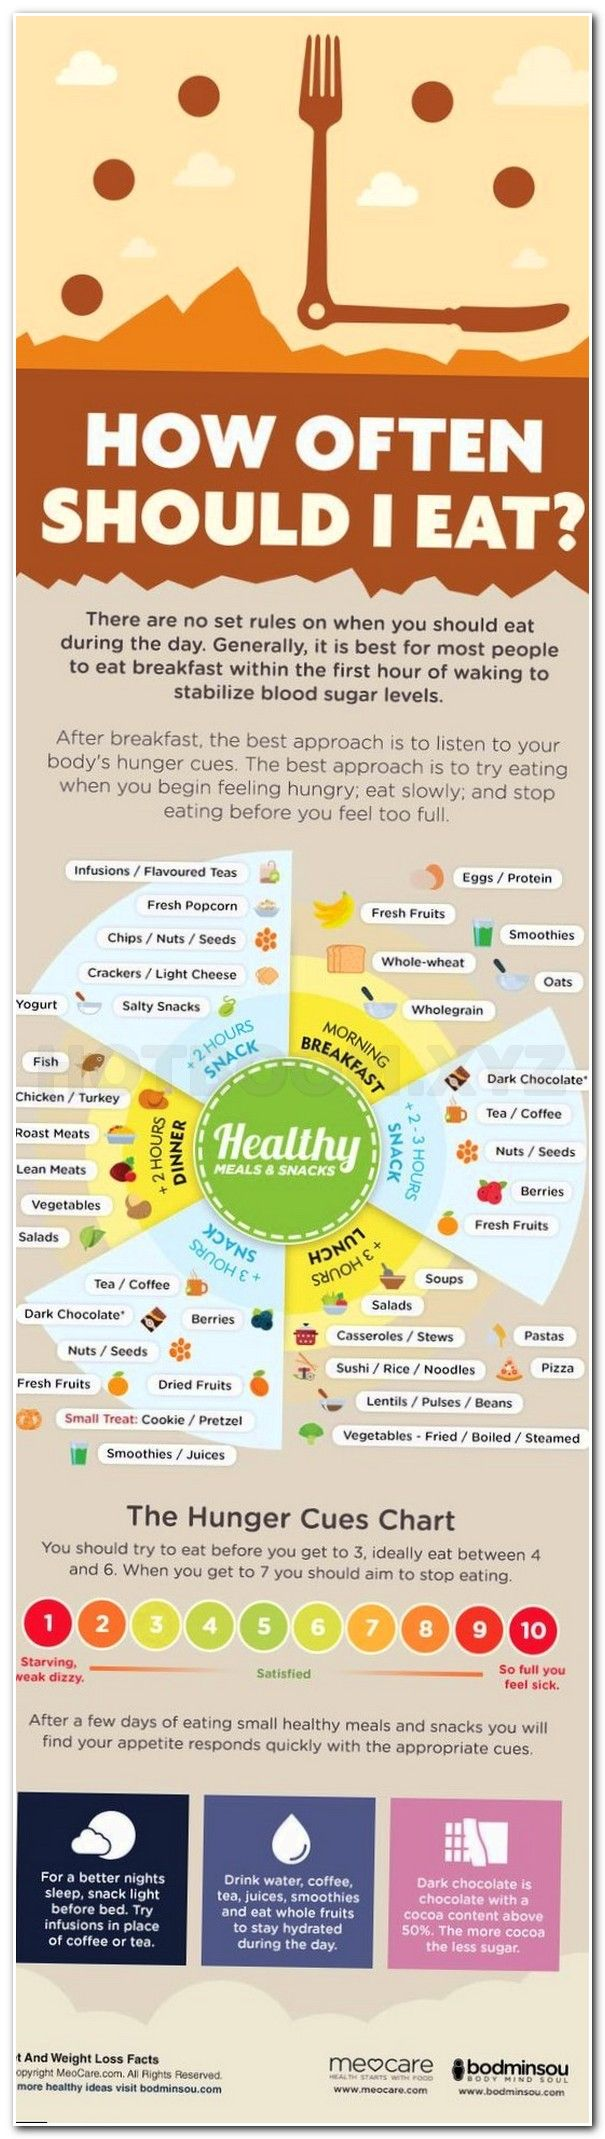 lose weight with fruits and vegetables, exercise for weight loss in gym, diet plan for fat loss female, food and healthy diet, the old mayo clinic diet, diet for acute diverticulitis, fish with low sodium, healthy diet for girls, veggies that burn belly f